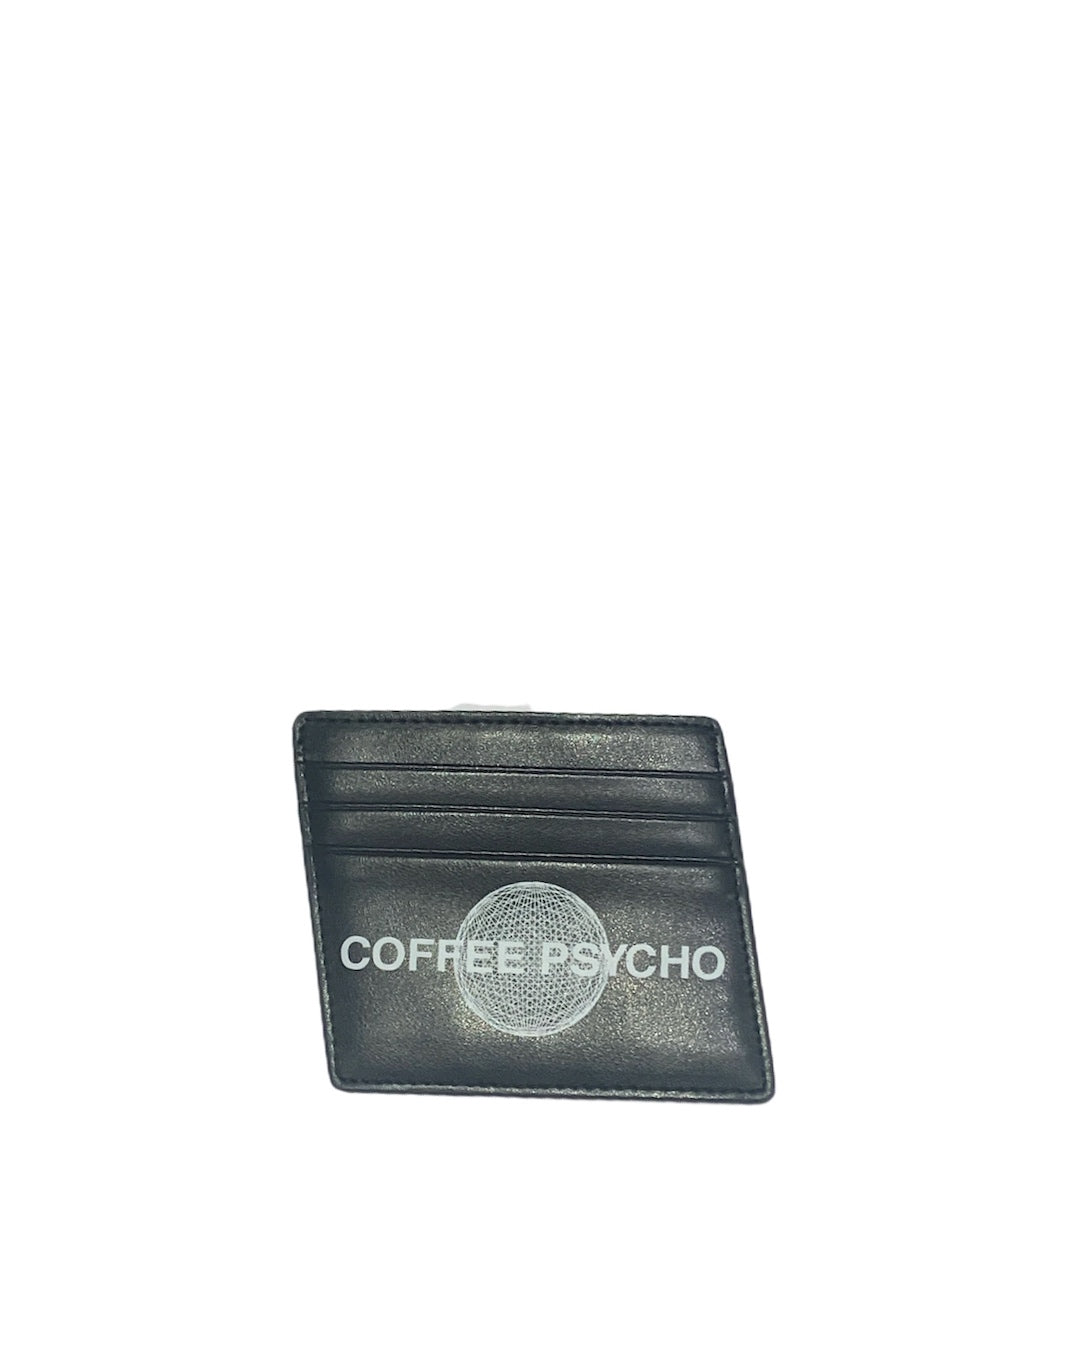 3NYCONCEPT.COM - COFFEE PYCHO CARD HOLDER